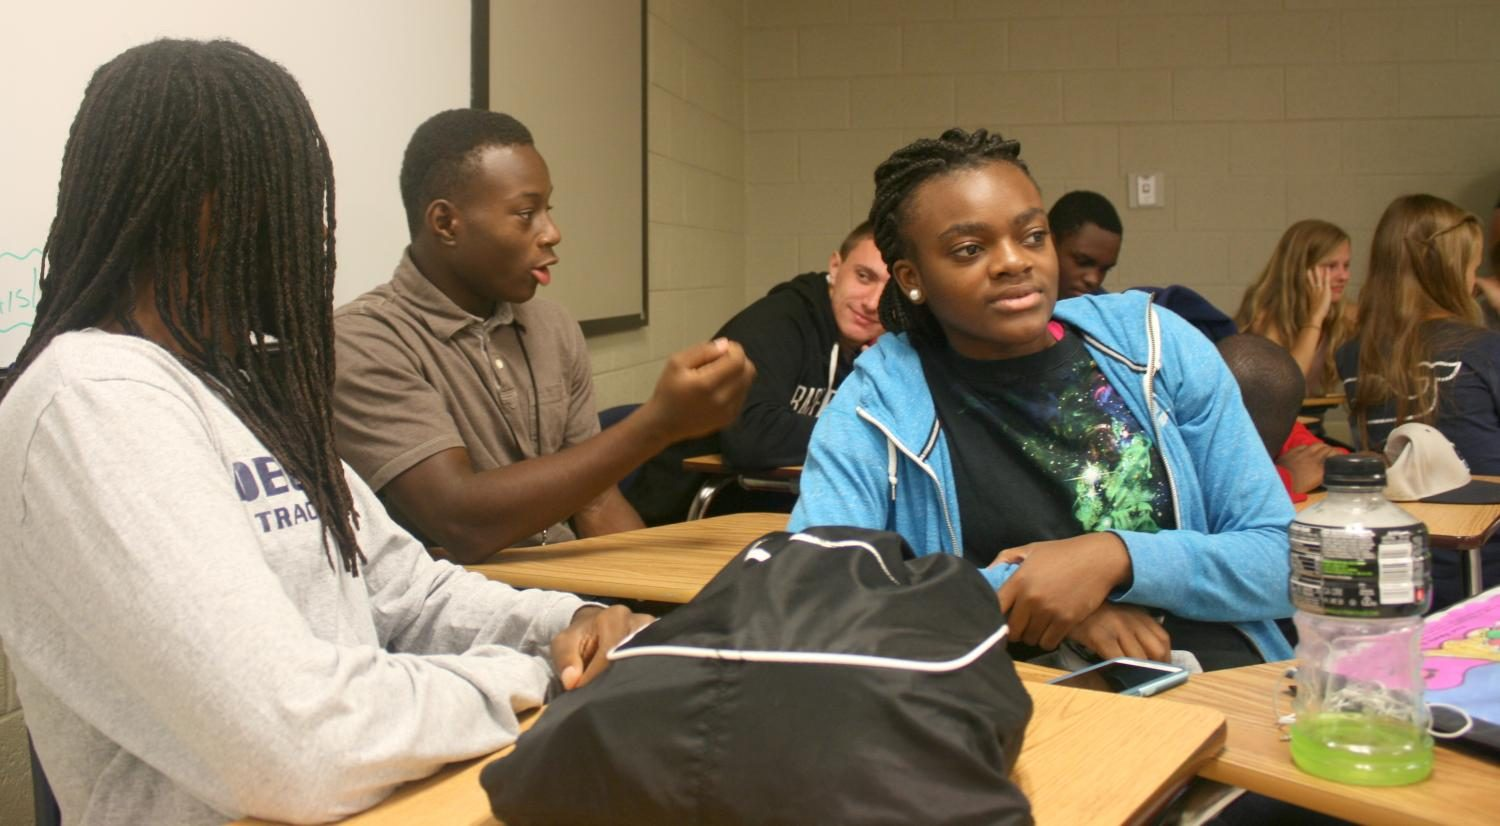 Juniors Martize Smith (center), Alia Bolden (right) and Eli Prejean (left) attend FCA's third meeting on Aug. 24.